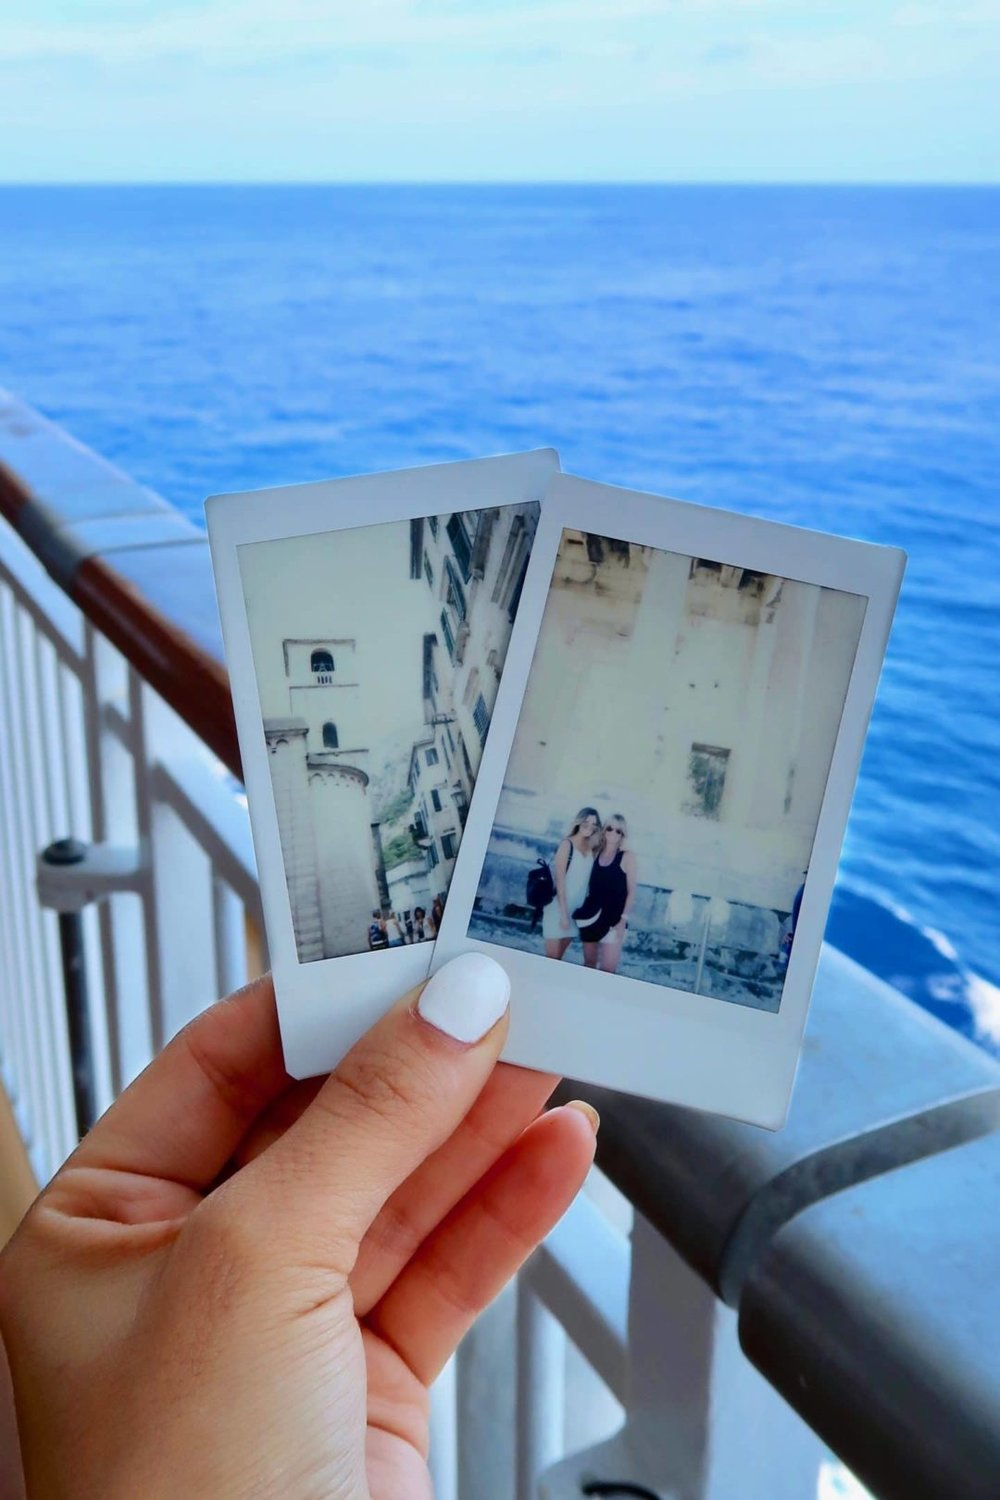 There's something about taking polaroid pictures on vacation that I absolutely cannot do without! - I've always loved capturing moments in time and having them to look back at years later. I've been taking pictures since I was a little kid and I can vividly remember always trying to steal my dad's cameras to take my own photos! When I was around 14-15, my friends and I would alwayssss do photoshoots around the neighborhood and it is HILARIOUS (and embarrassing) to look back at those pictures now!It's so easy to capture moments on a phone, or a point and shoot camera, or even a DSLR. But those are all digital and there's something so fascinating about watching a polaroid print your photo as soon as it's taken. That very specific memory is captured in a little sheet of plastic, maybe a little overexposed or a little too dark… but it's there. Yes, you can print your digital photos and have it be similar BUT it will never be the same.